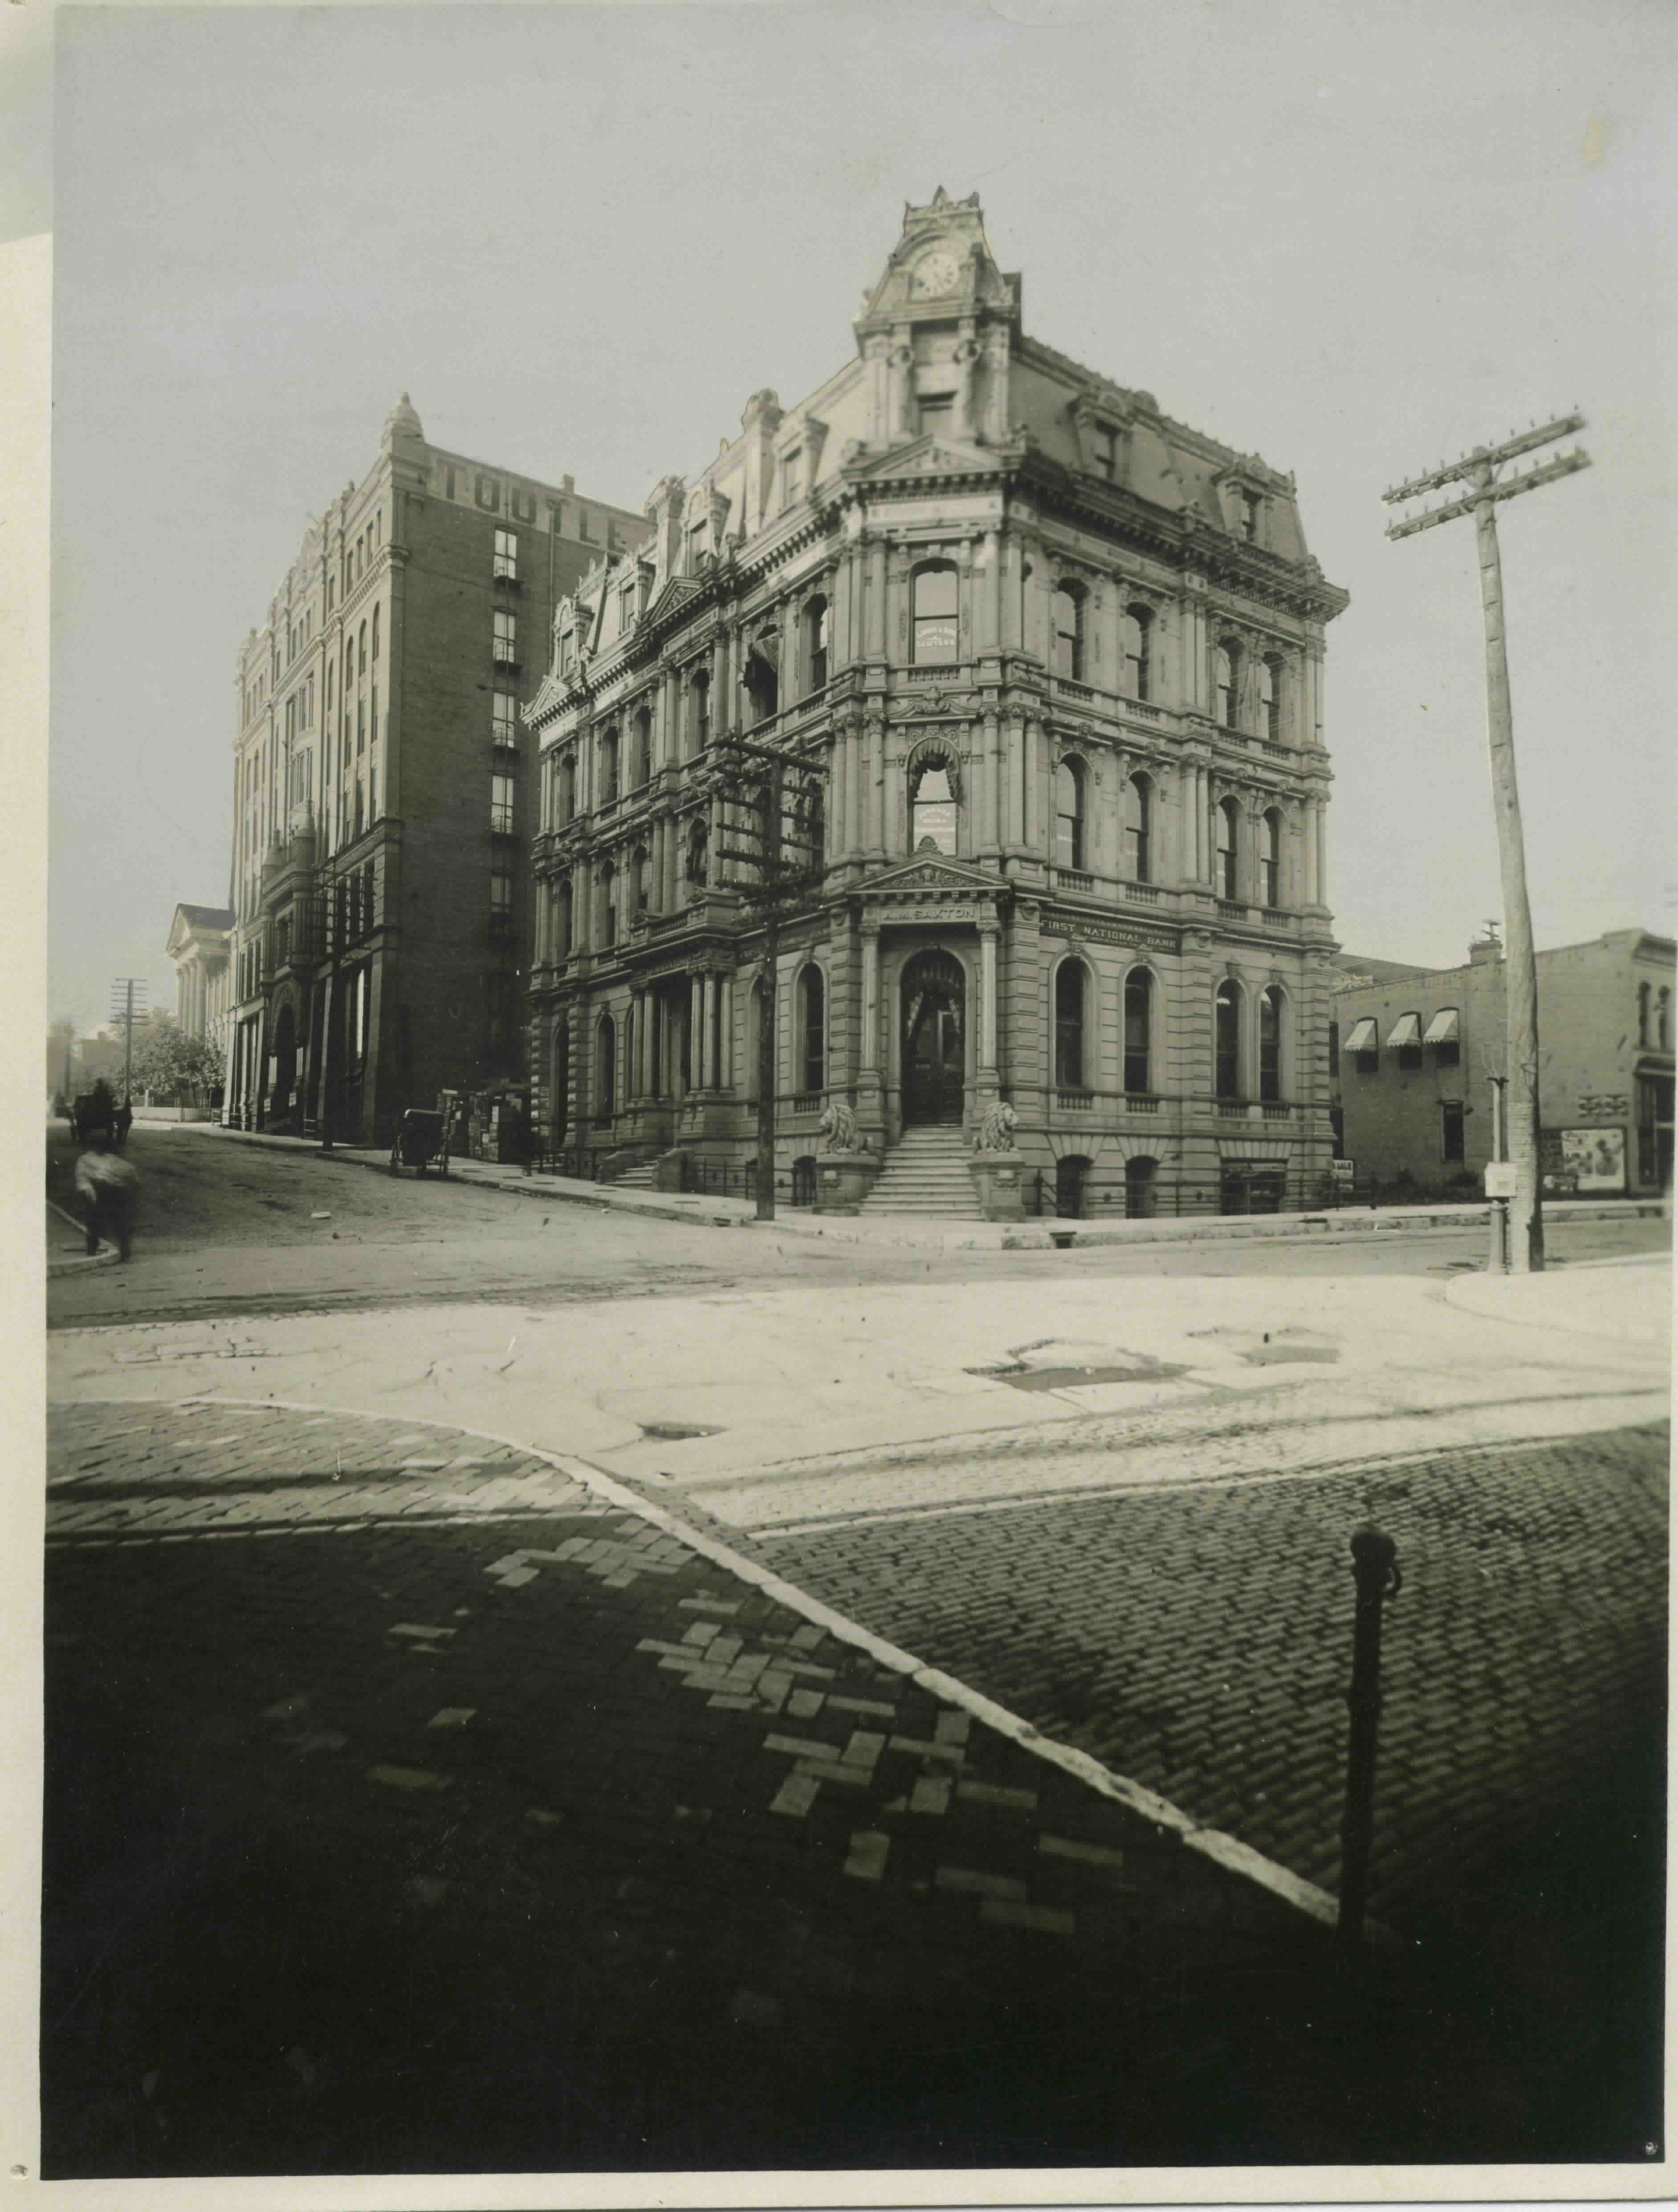 Northeast corner of Fourth and Francis Streets depicting the Saxton National Bank Building.